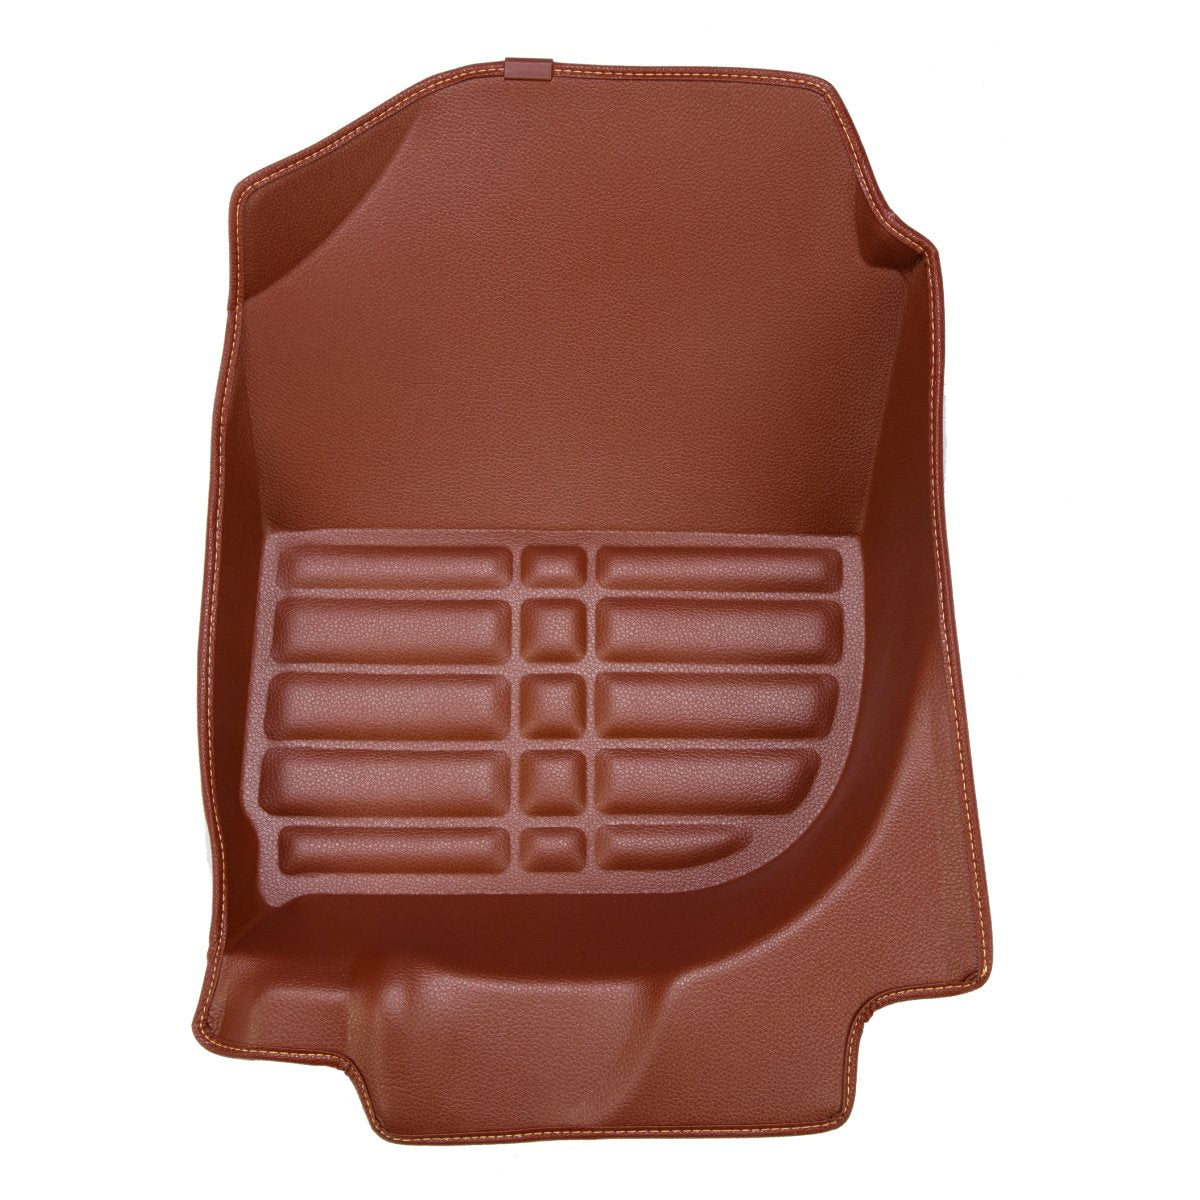 MATTERS 5D Car Mat - Honda Vezel (Brown)